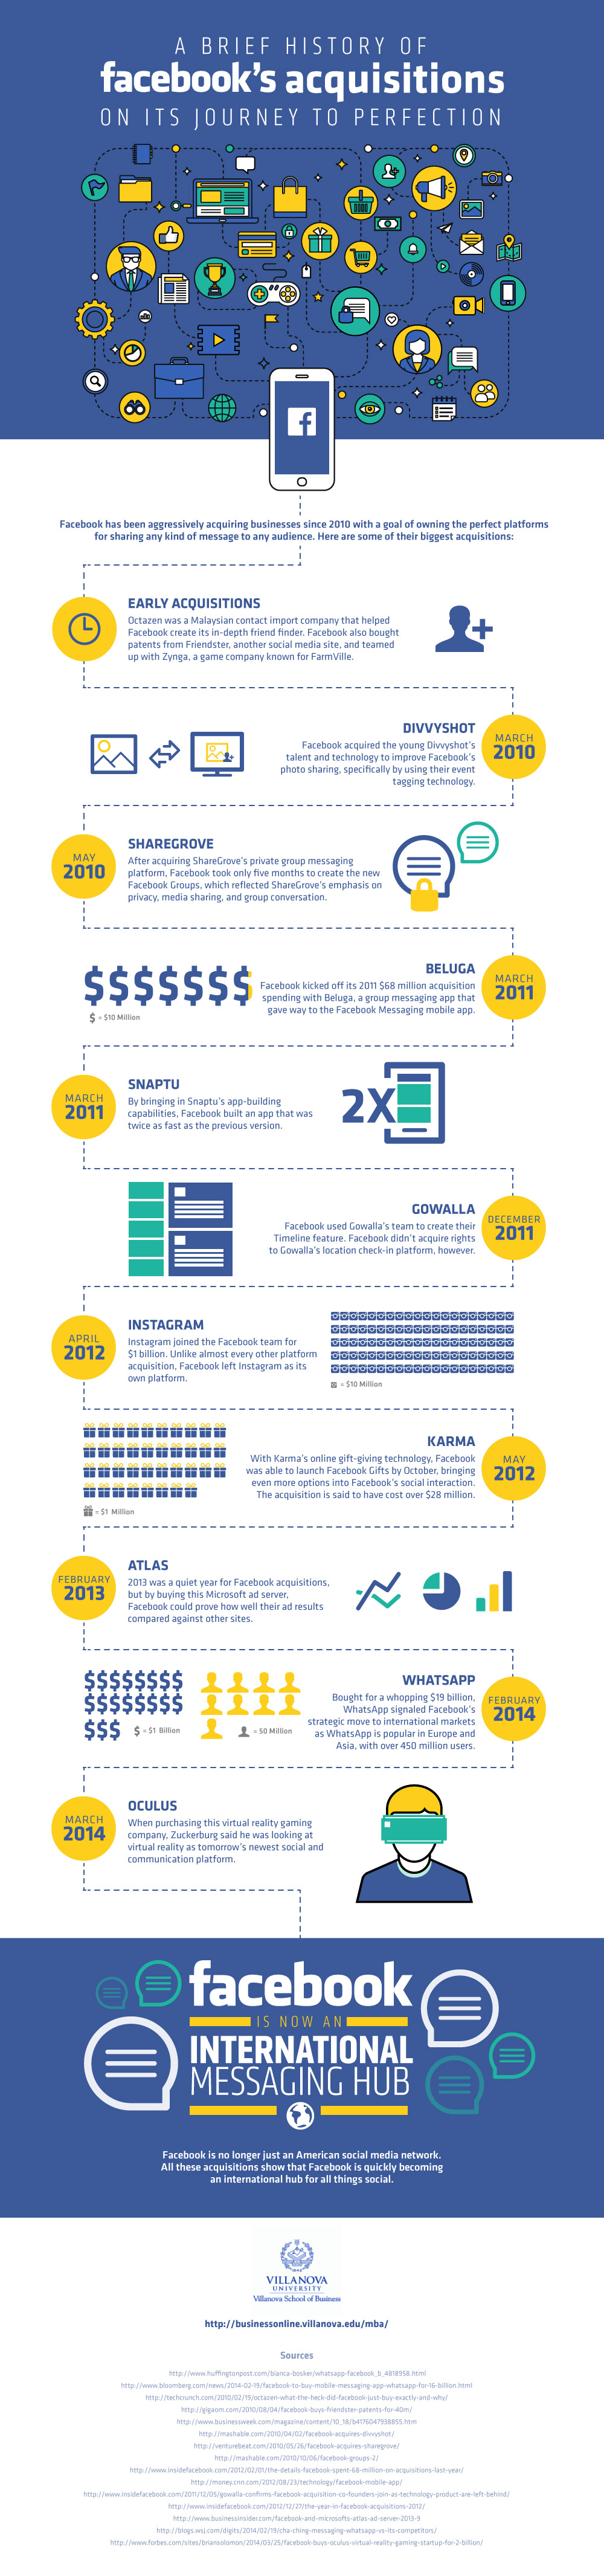 A Brief History of Facebook's Acquisitions on it's Journey to Perfection